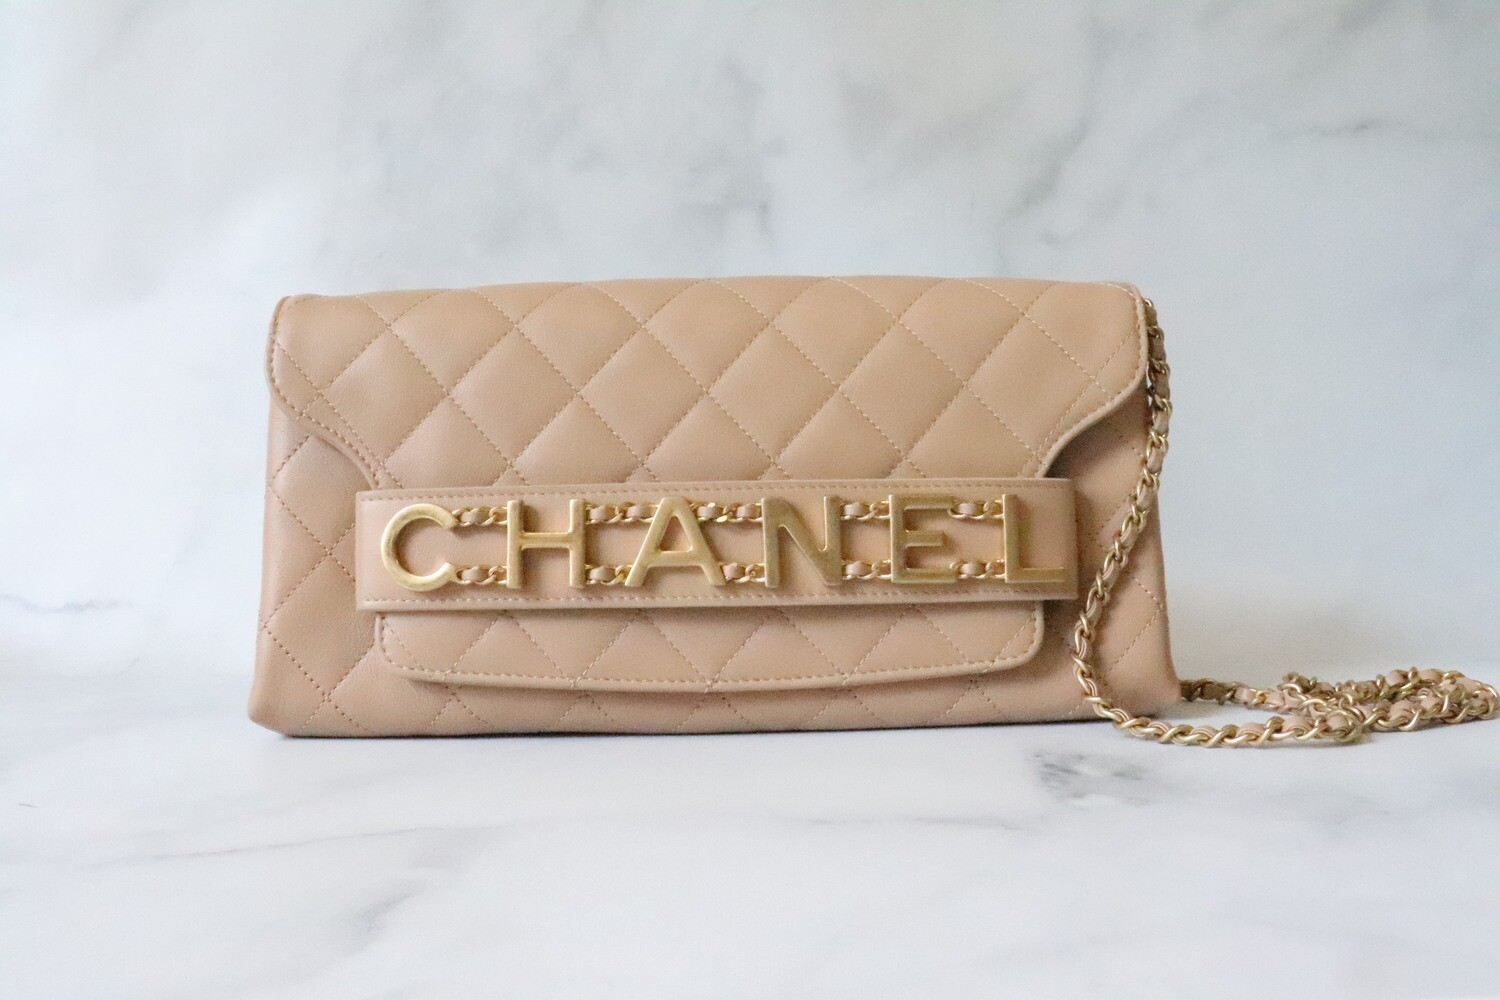 Chanel Seasonal Beige Enchained Logo Clutch Bag, Gold Hardware, Pre-owned in Dustbag